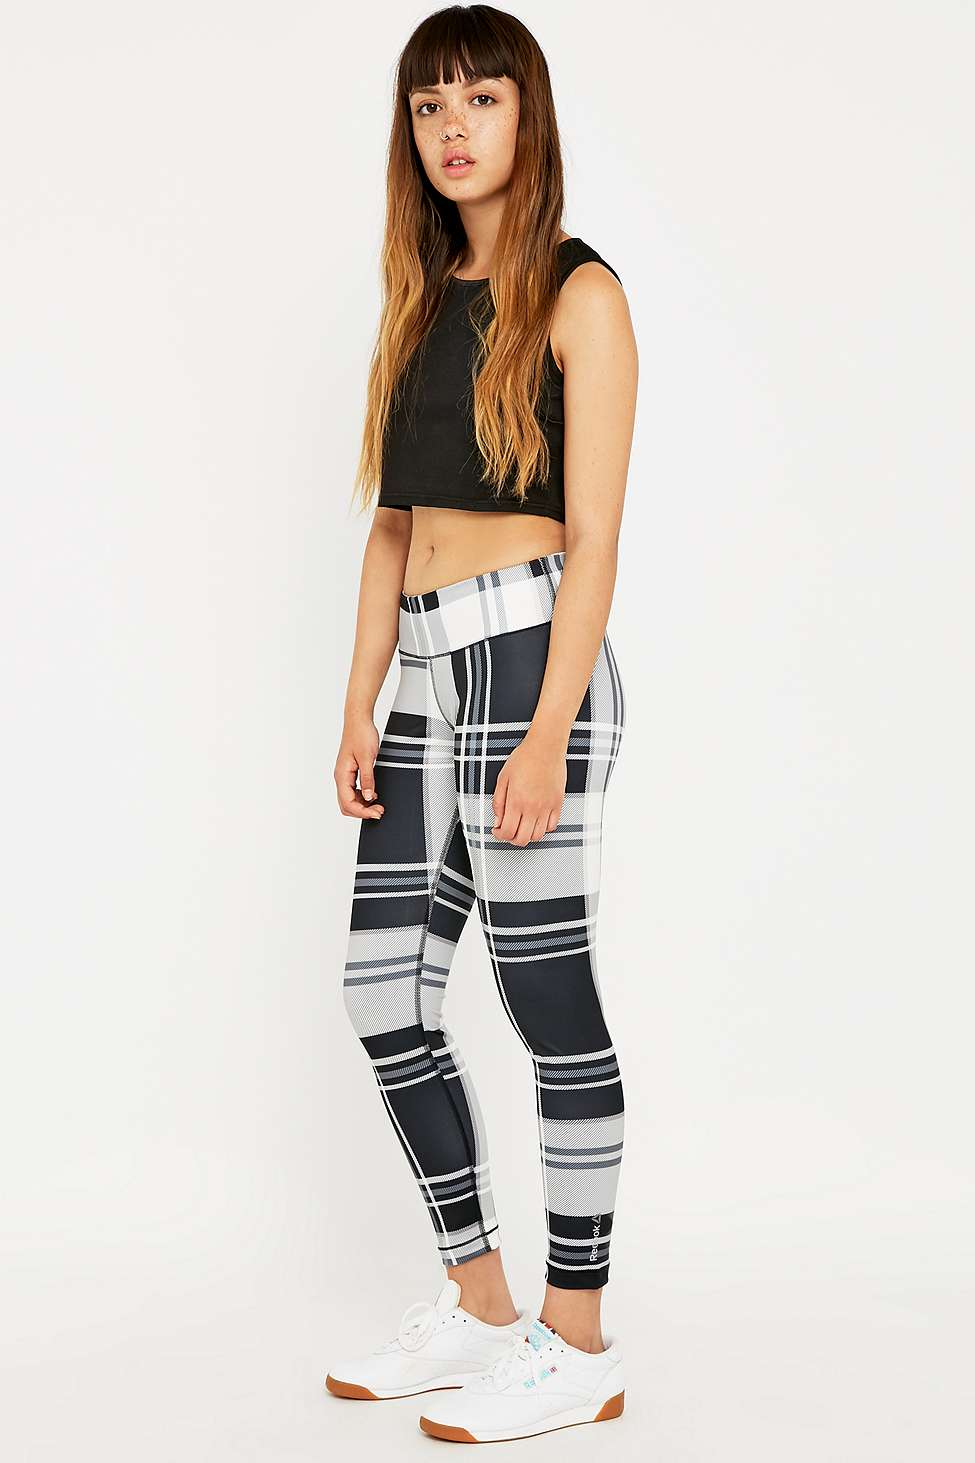 45793a5355e22 Reebok Plaid Yoga Leggings. From Urban Outfitters